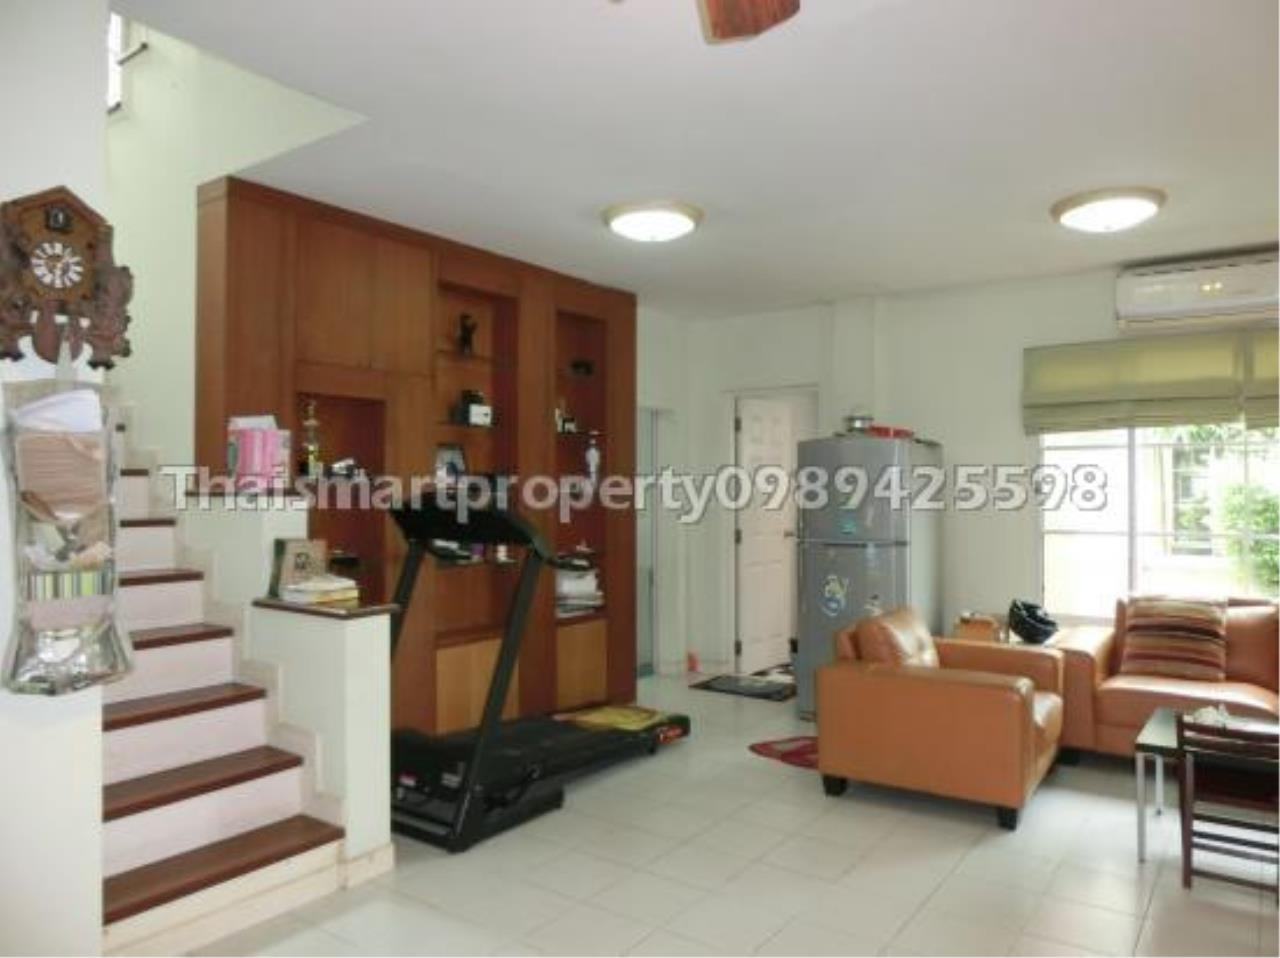 Thai Smart Property Agency's Chaiyapruek Village Rangsit Klong 4 single detached house. 4